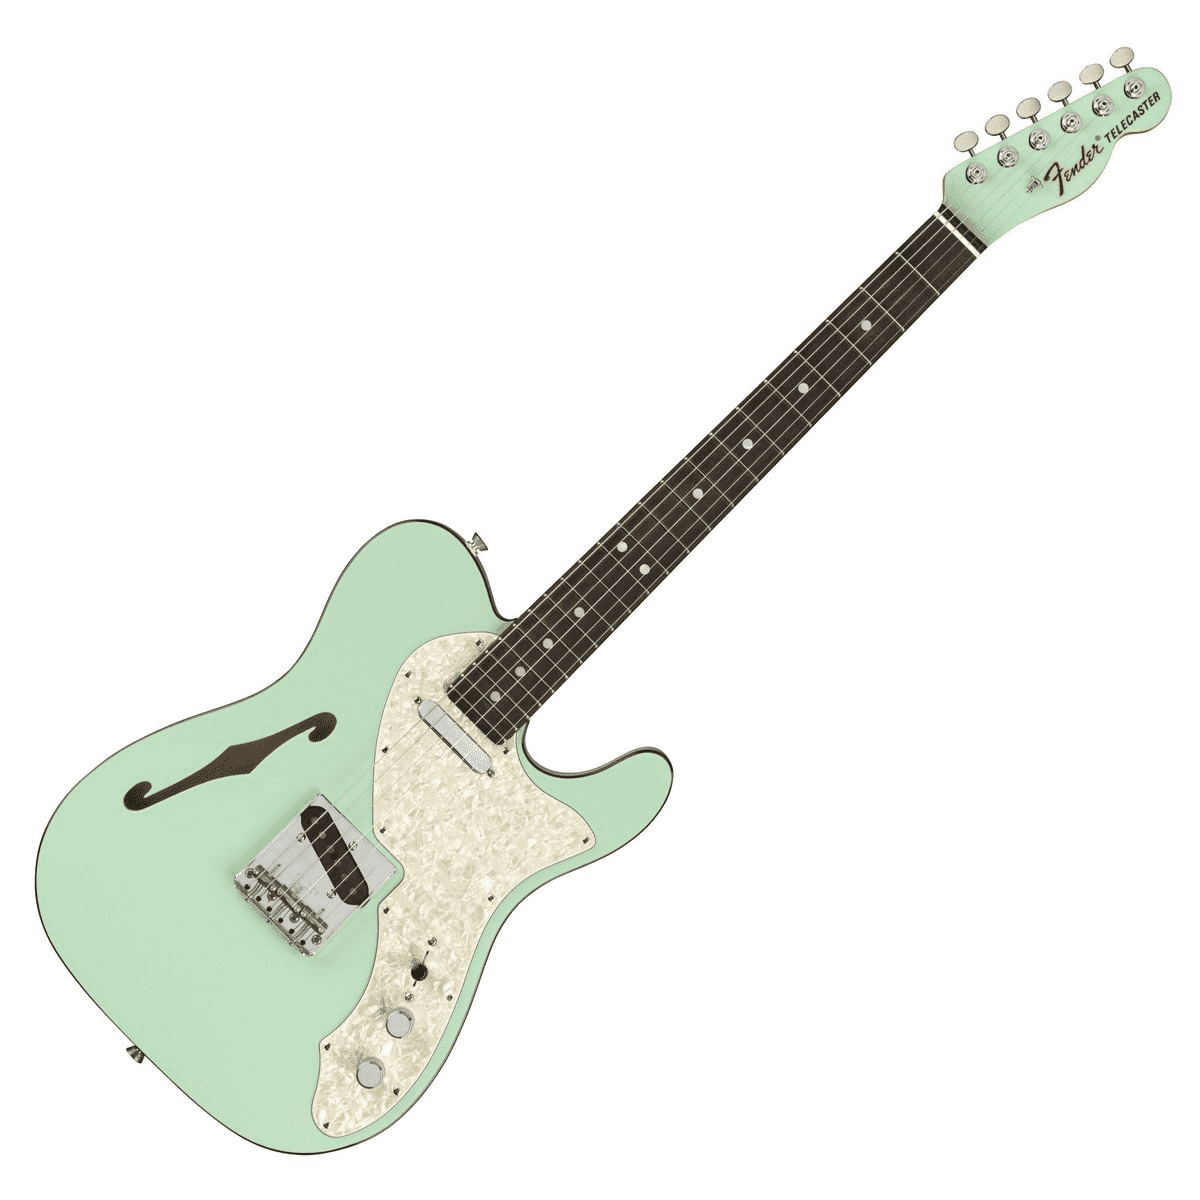 Fender 2-Tone Telecaster Thinline Surf Green